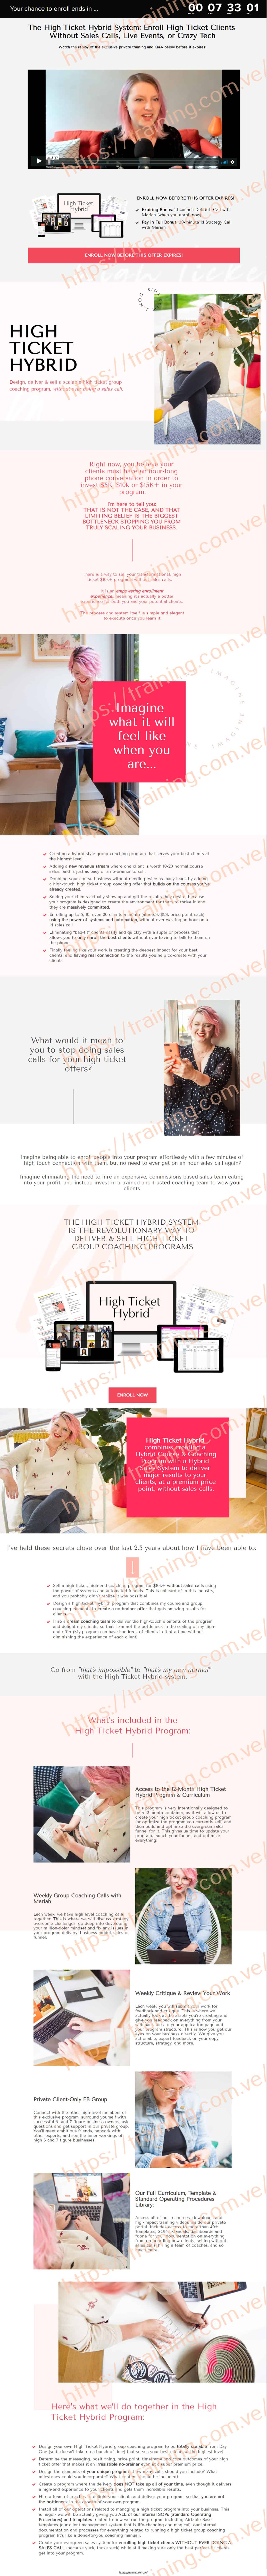 High Ticket Hybrid by Mariah Coz Sale page